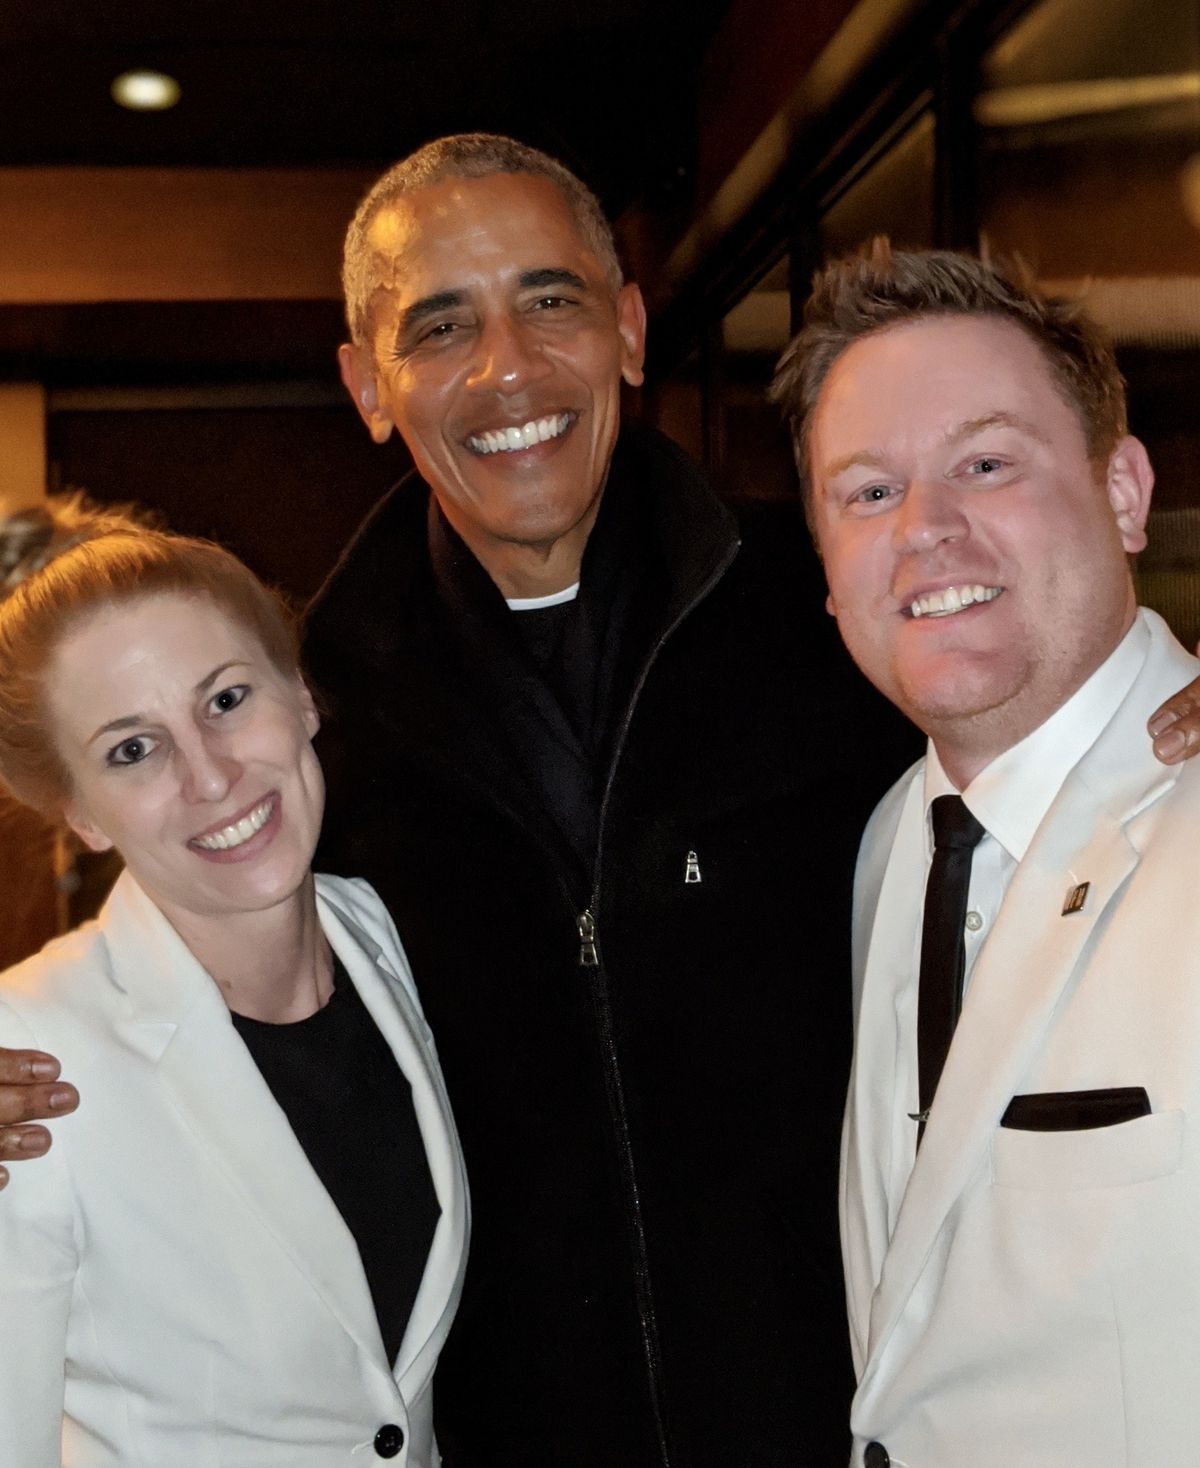 President Barack Obama poses with two employees in white jackets.